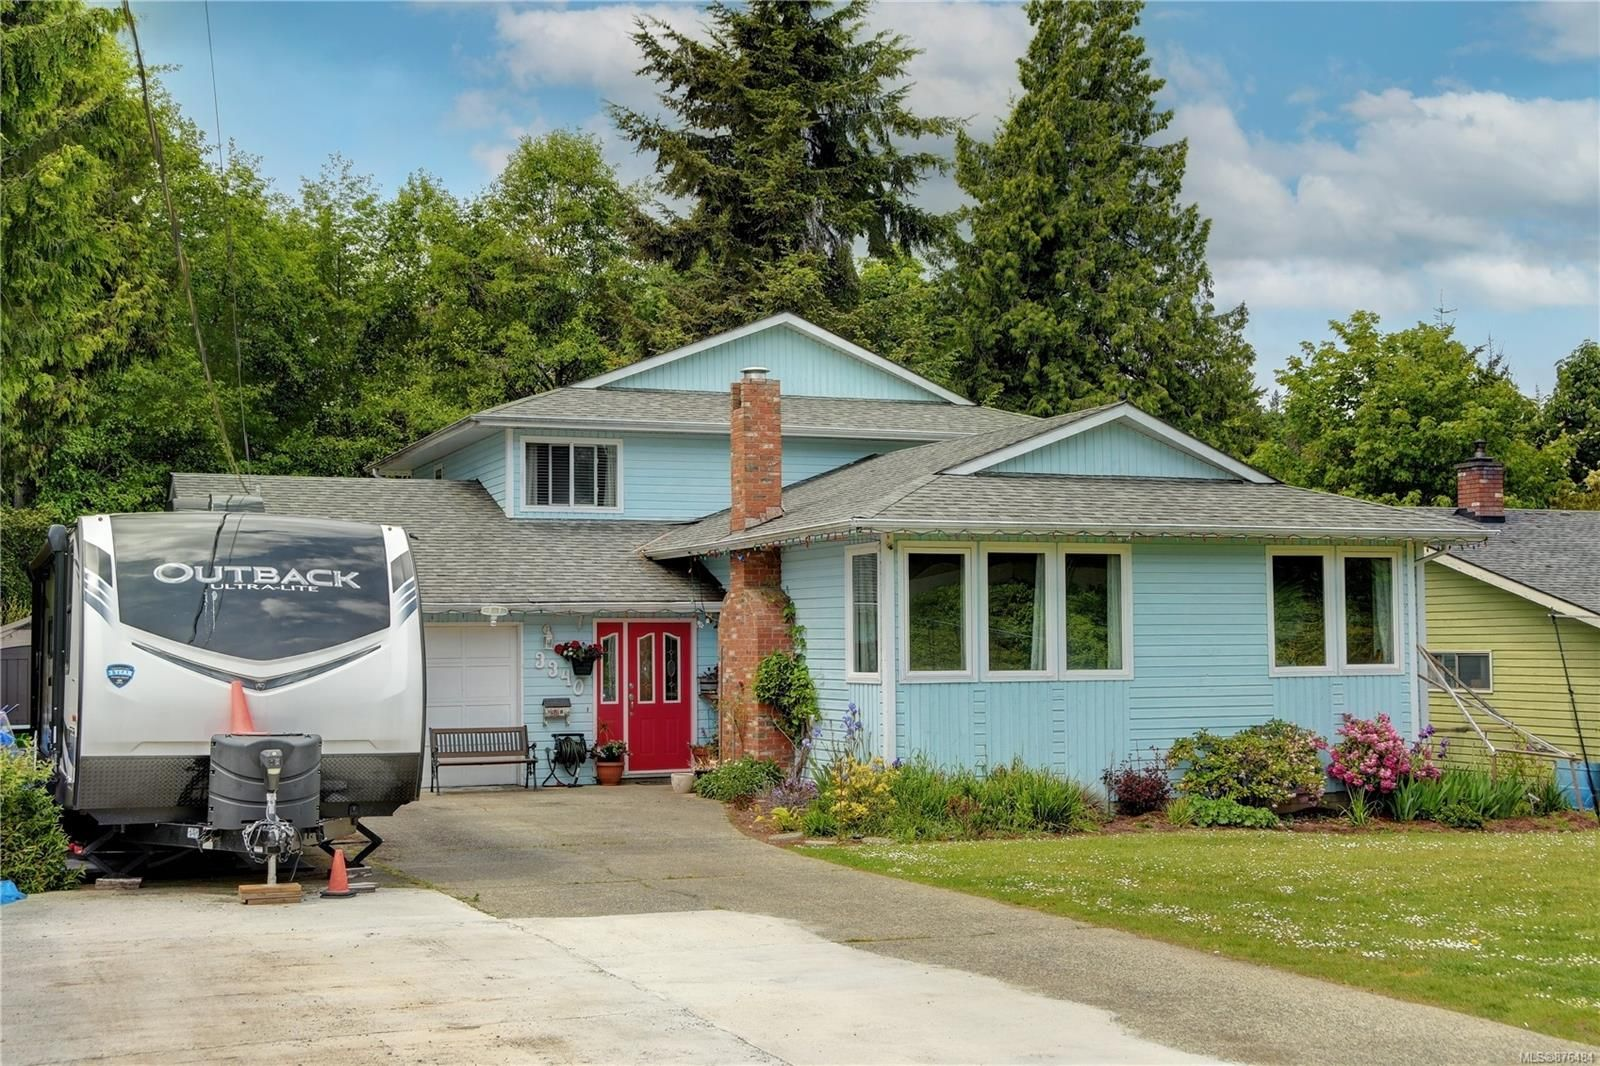 Main Photo: 3340 Mary Anne Cres in : Co Triangle House for sale (Colwood)  : MLS®# 876484